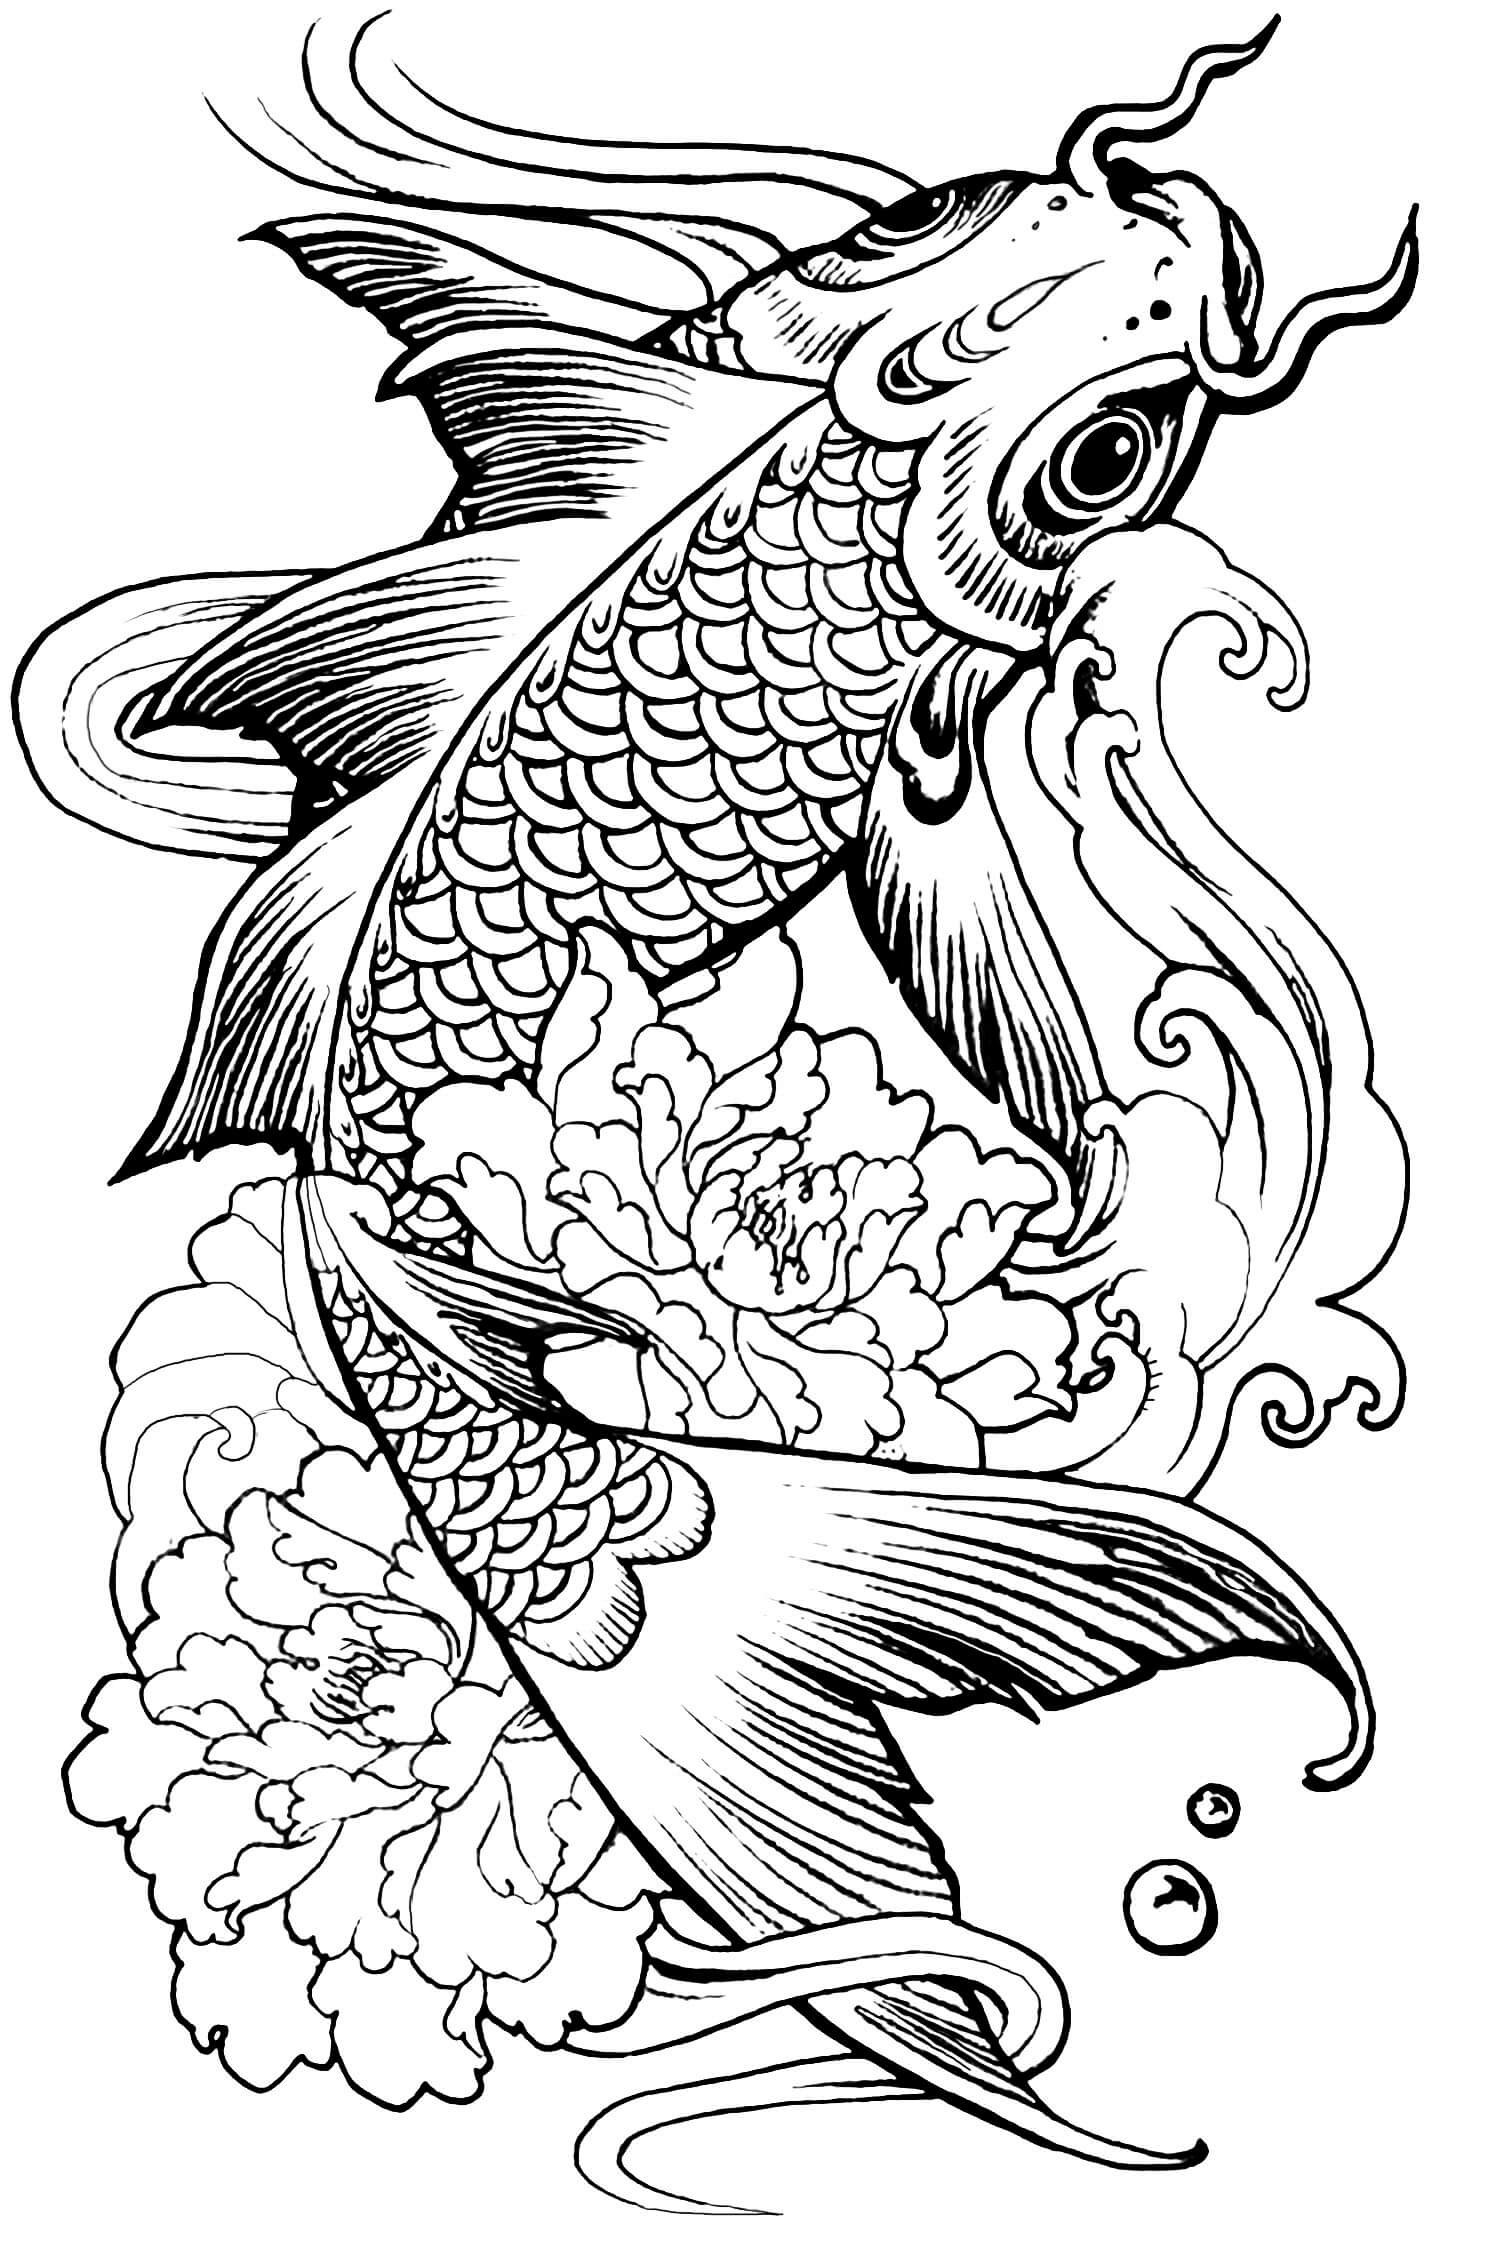 animals drawings to color animal coloring pages best coloring pages for kids color drawings to animals